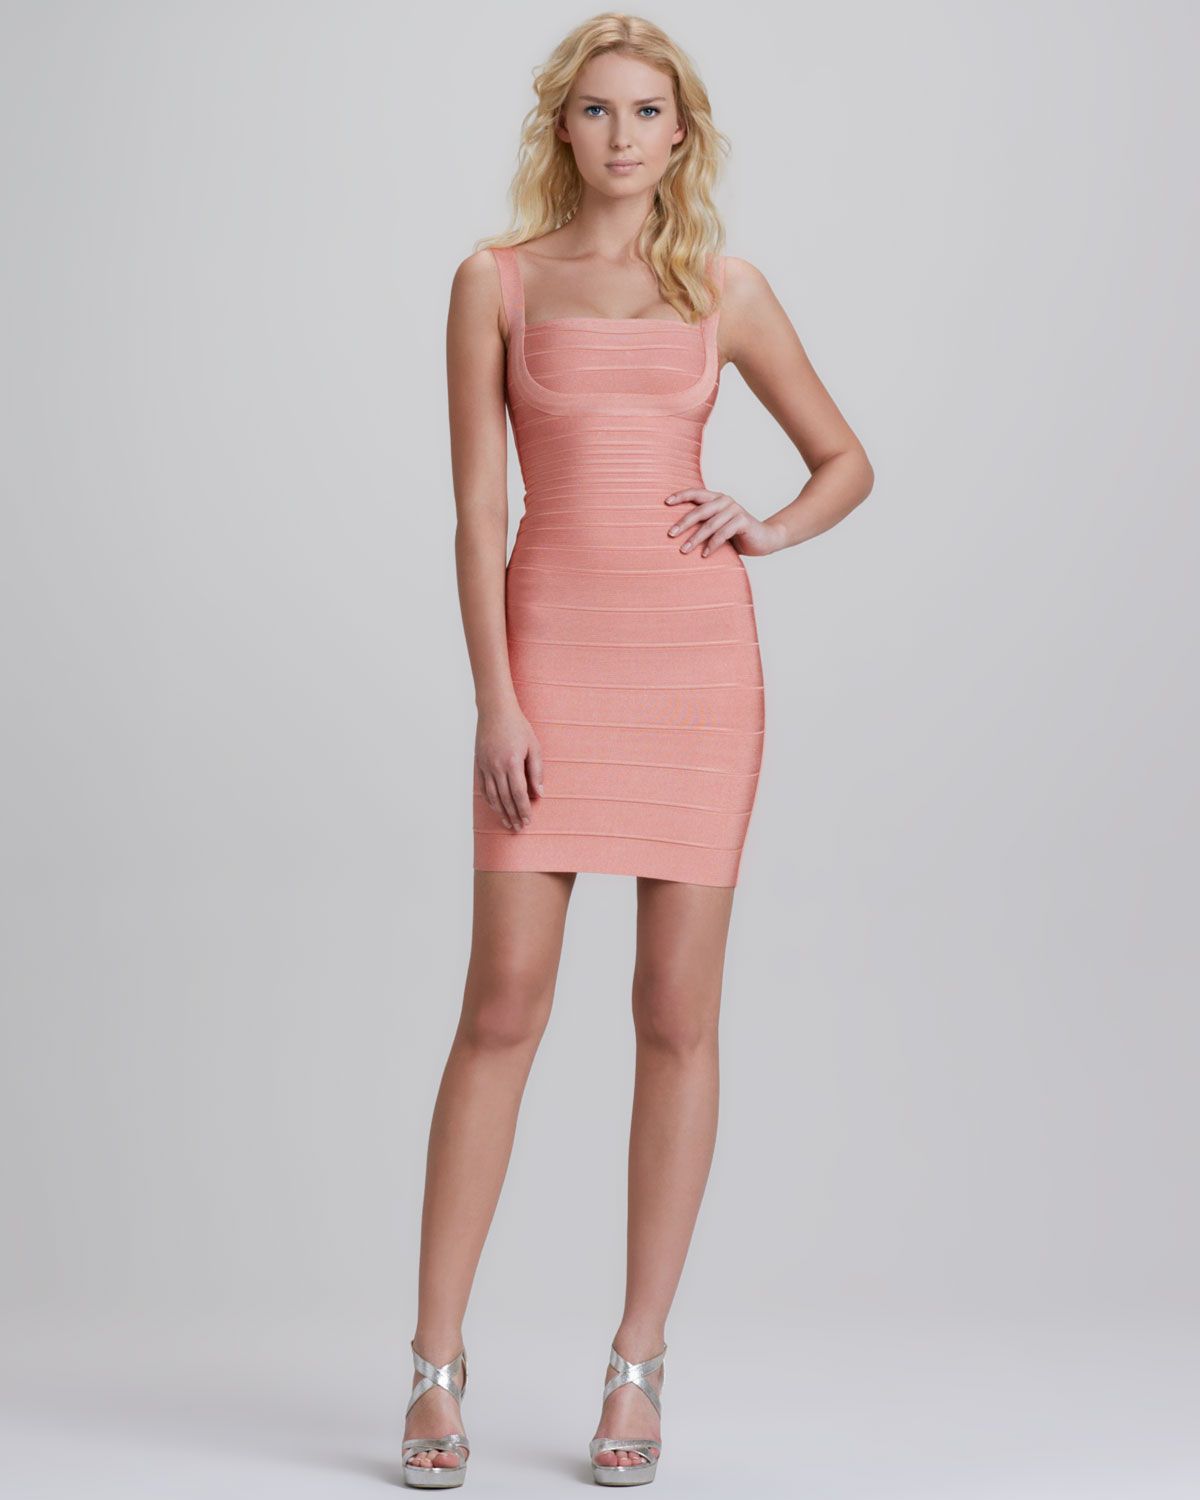 ❦ Herve Leger Sleeveless Square-Neck Bandage Dress - Neiman Marcus ...